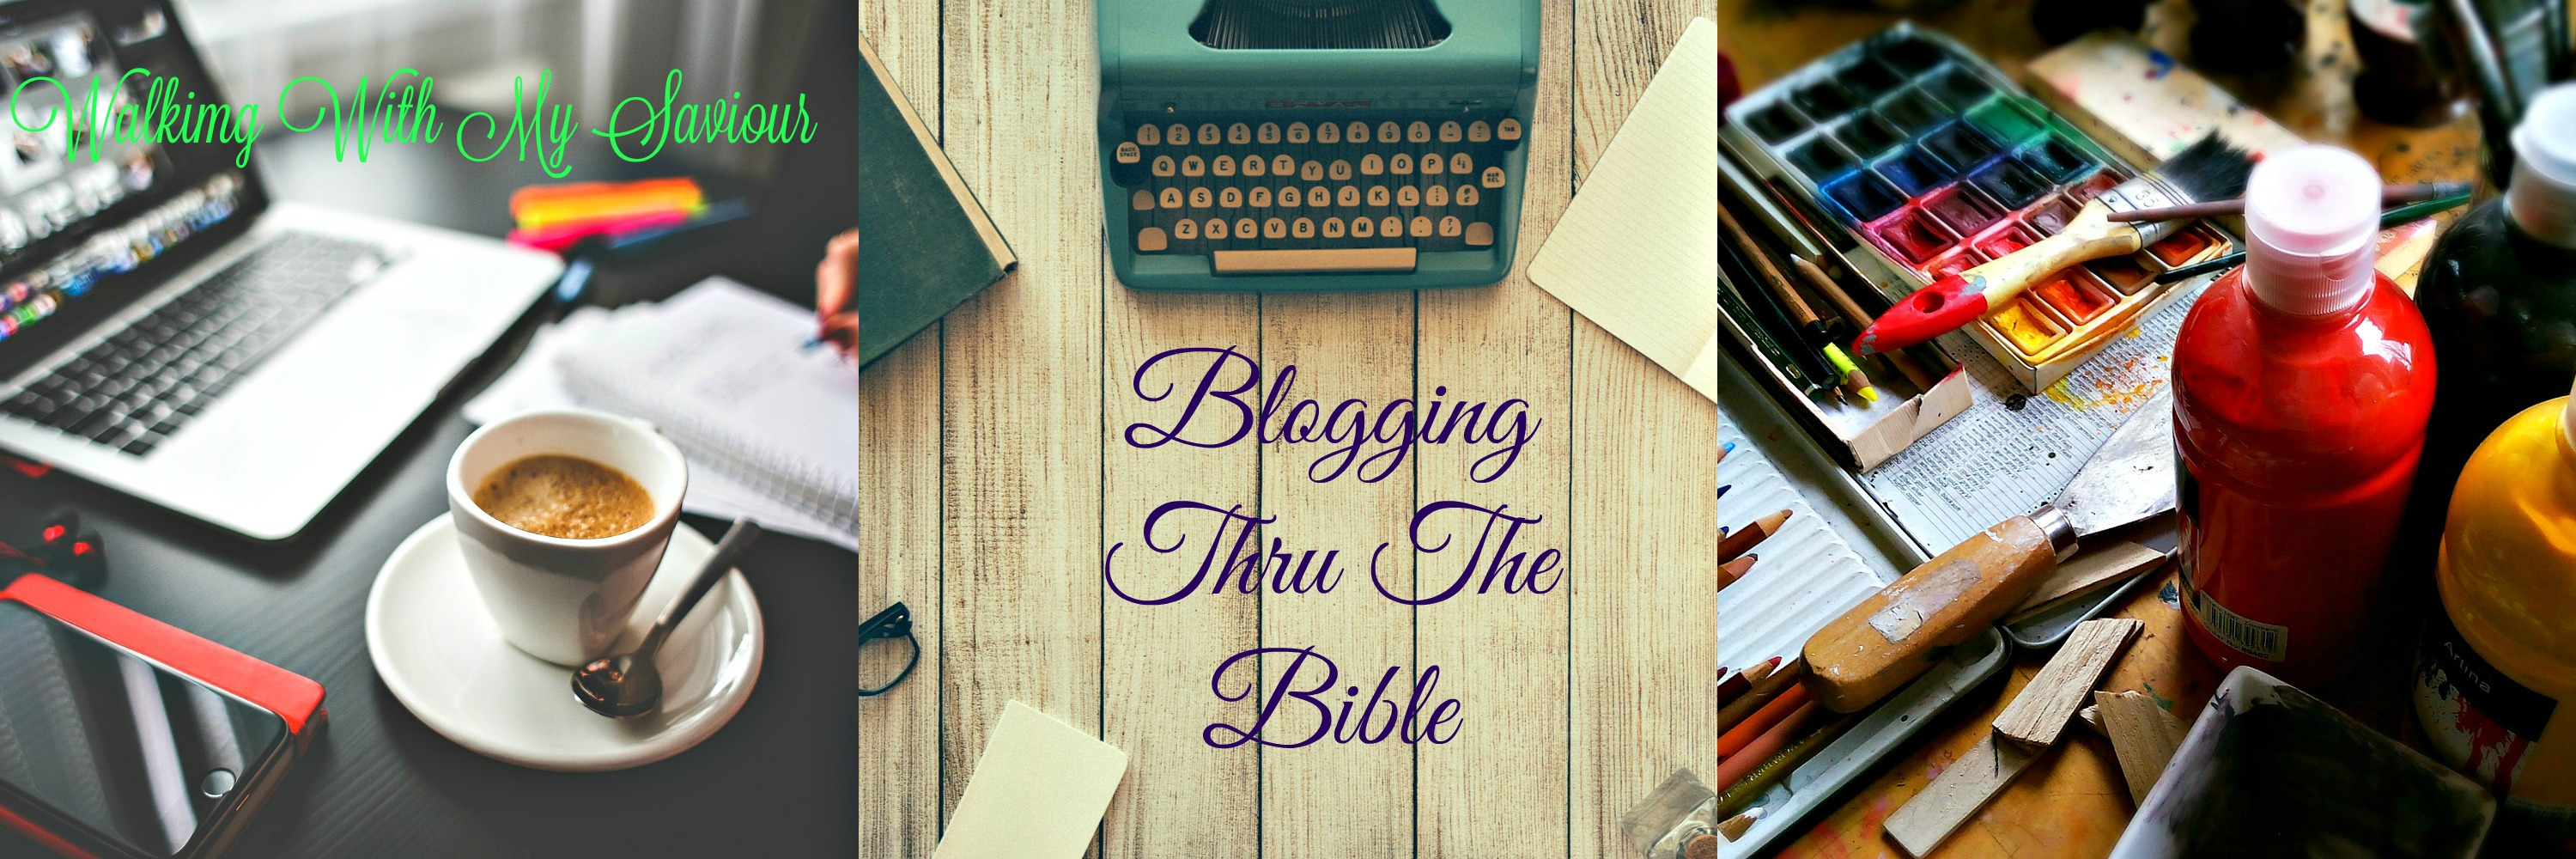 BLOGGING THRU THE BIBLE: Good Morning Girls Resources {Romans 11-16}